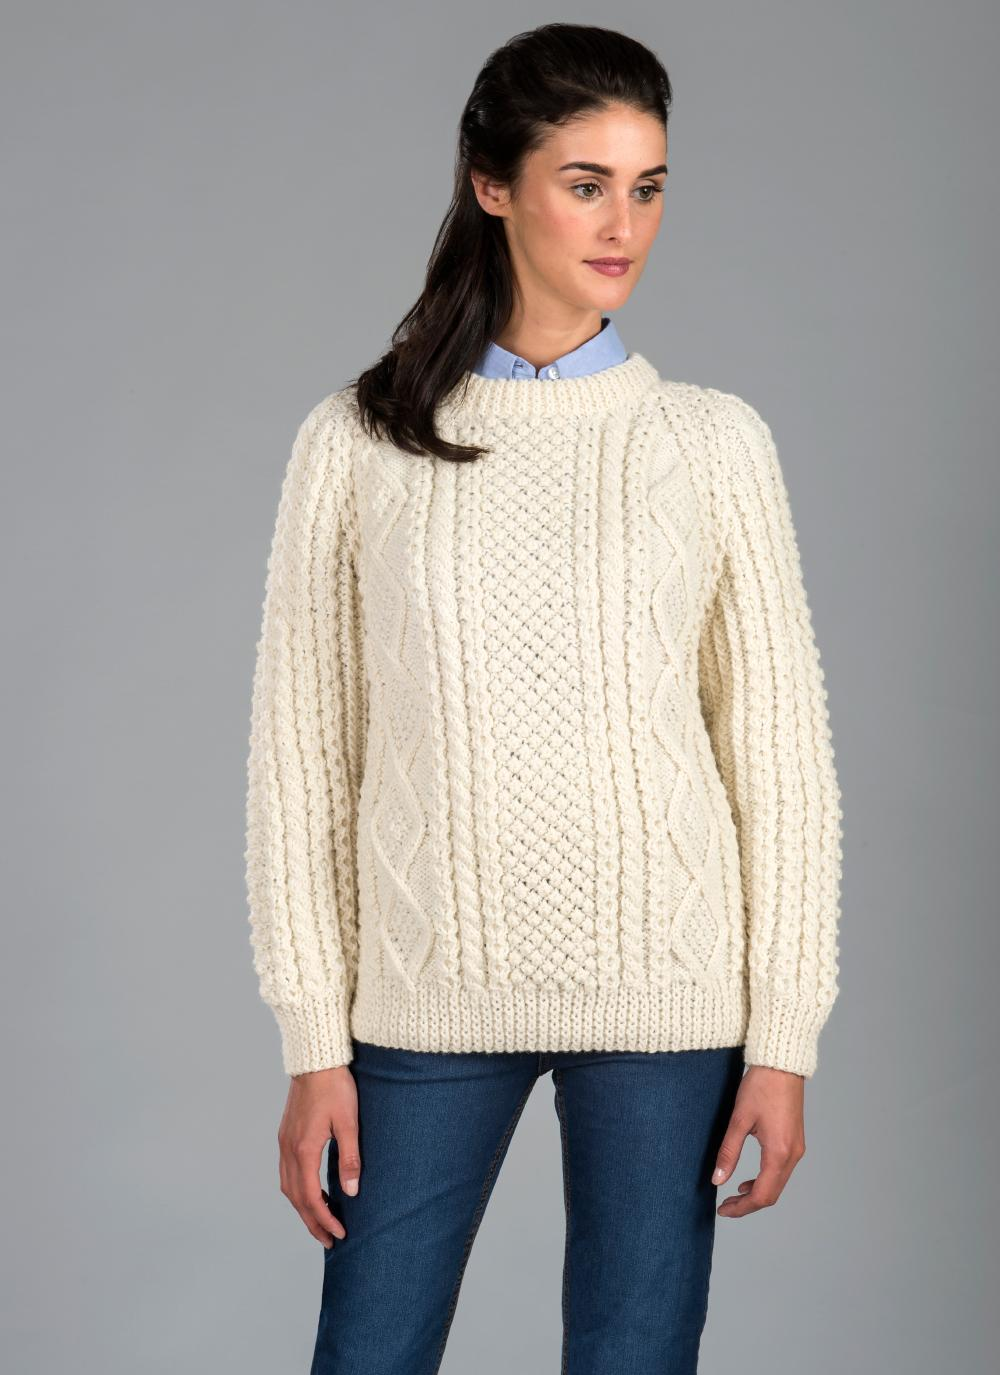 If you ask yourself or googling how to wear knitted sweaters for women, then I am here to help you with this question. If you do like warm clothing, knits, bohemian spirit, great details, turtlenecks, slouchy fits, preppy granny looks, then knitted sweater is what you really need my dear lady!